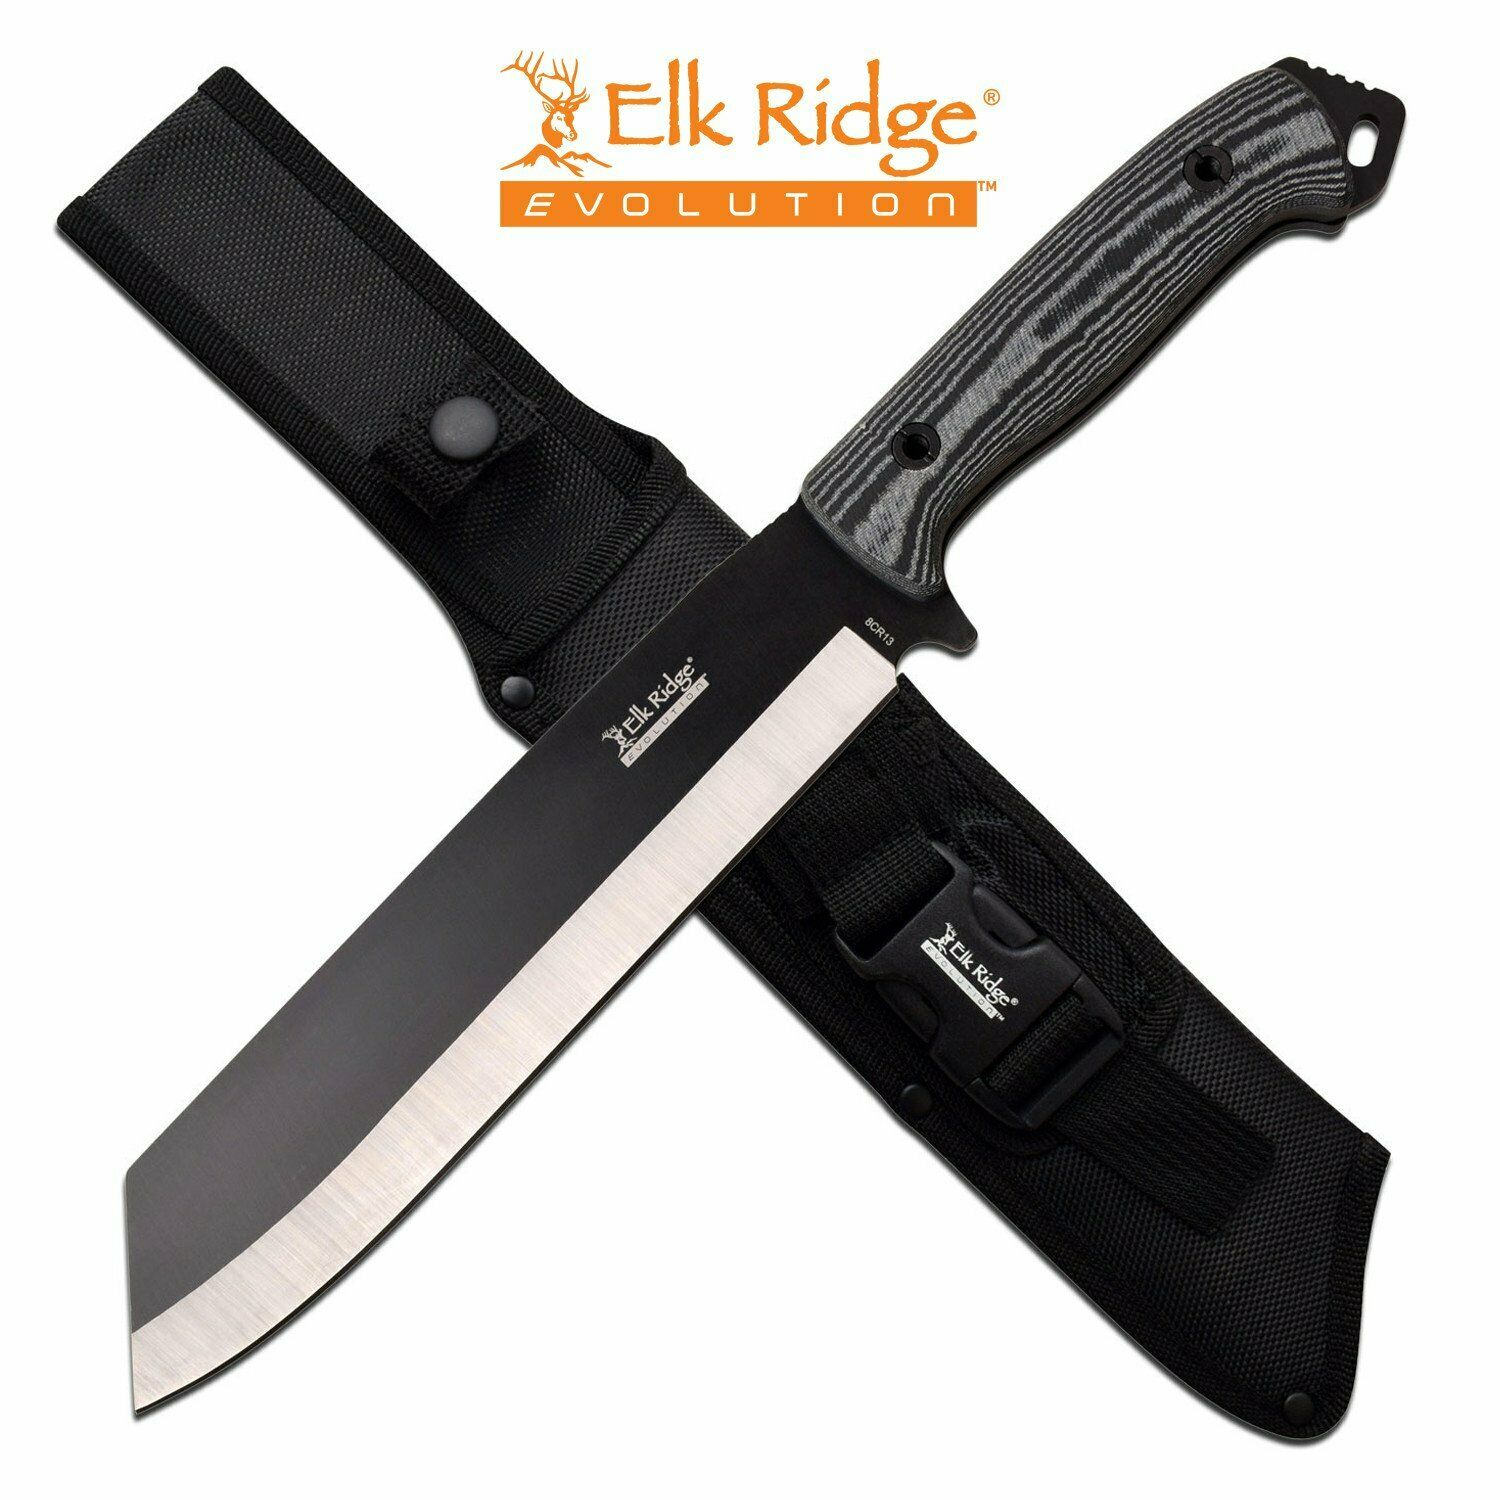 Elk Ridge Evolution Full-Tang Bowie Fixed Blade Knife Wharncliffe 4mm Thick Micarta Handle 8Cr13 Steel